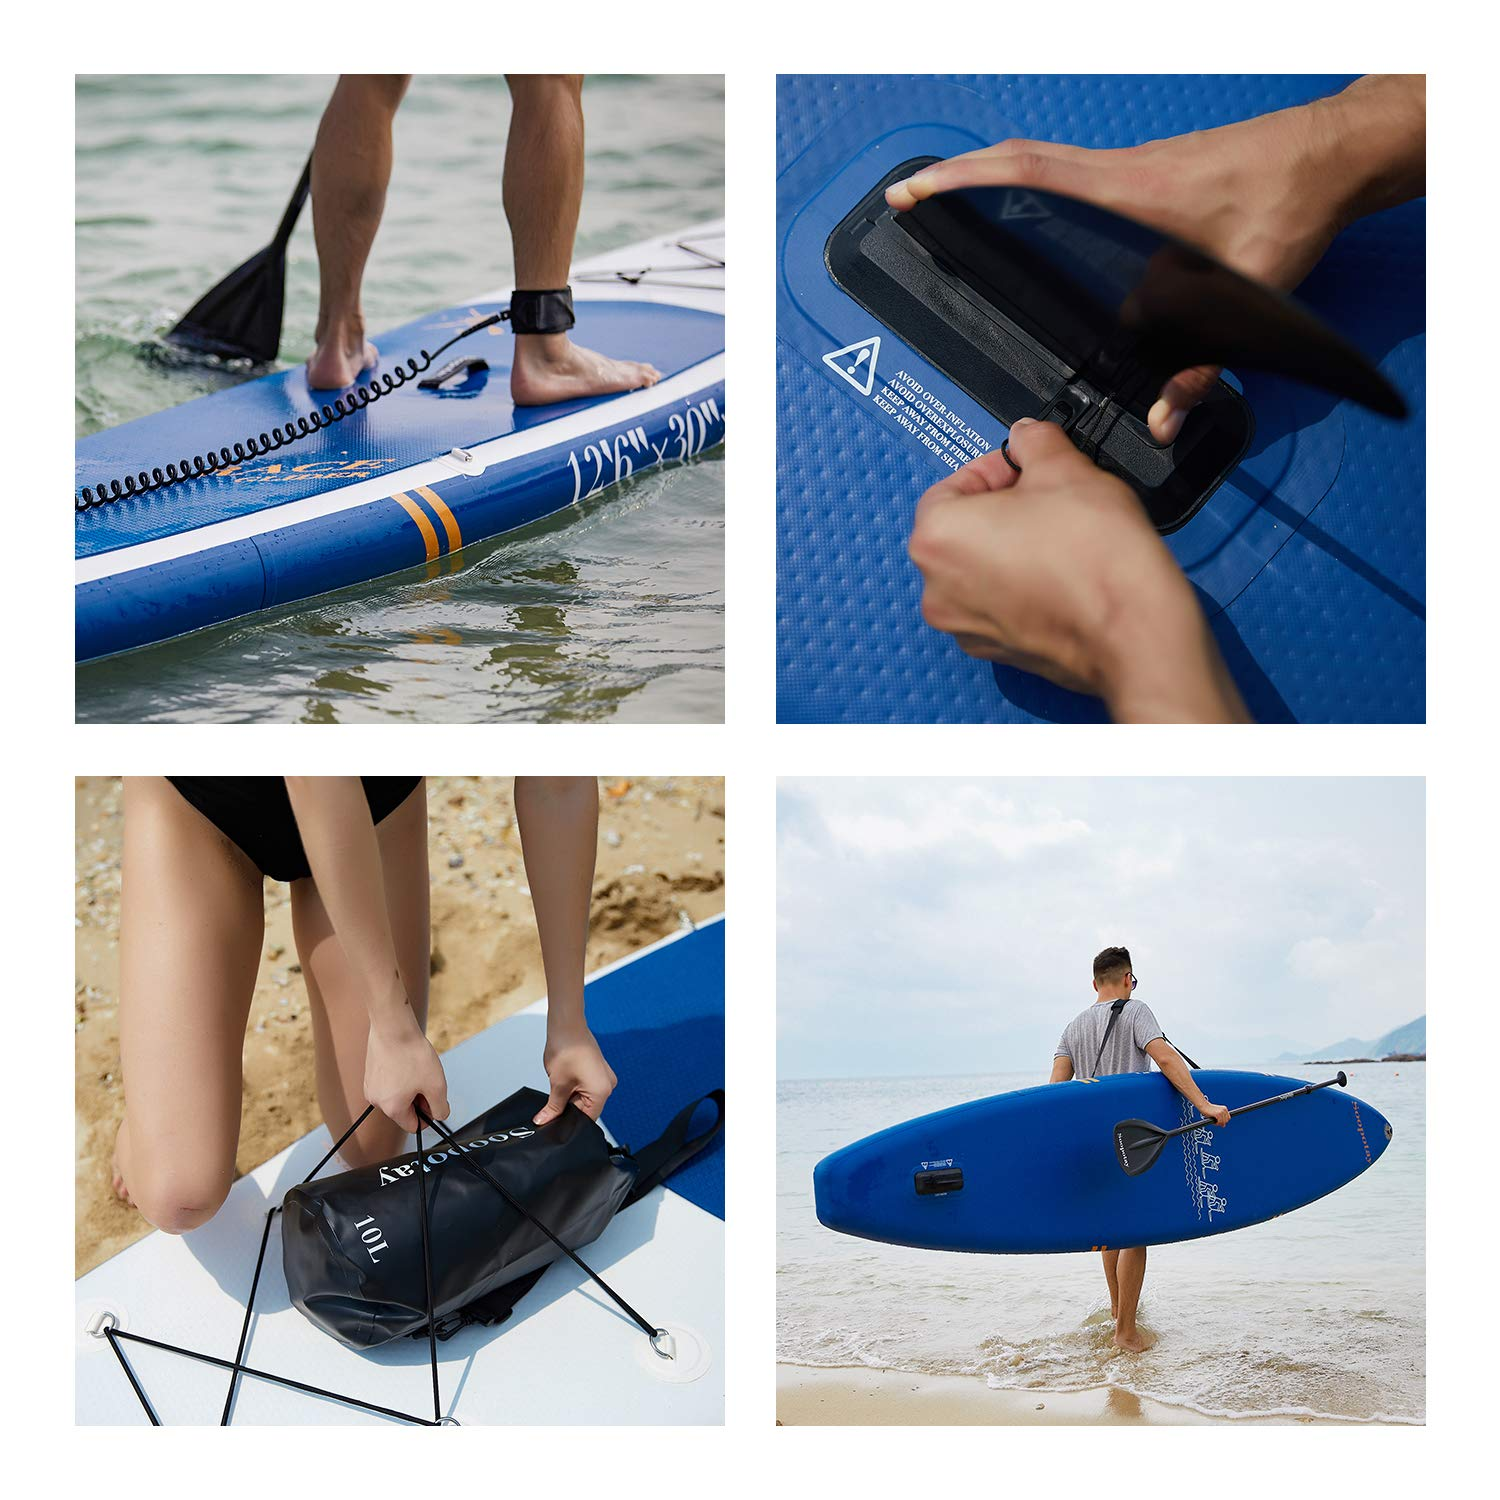 Inflatable SUP Stand Up Paddle Board, Inflatable SUP Board, iSUP Package with All Accessories (Racing-Navy Blue-12'6'' x 30'' x 6'') by Soopotay (Image #3)